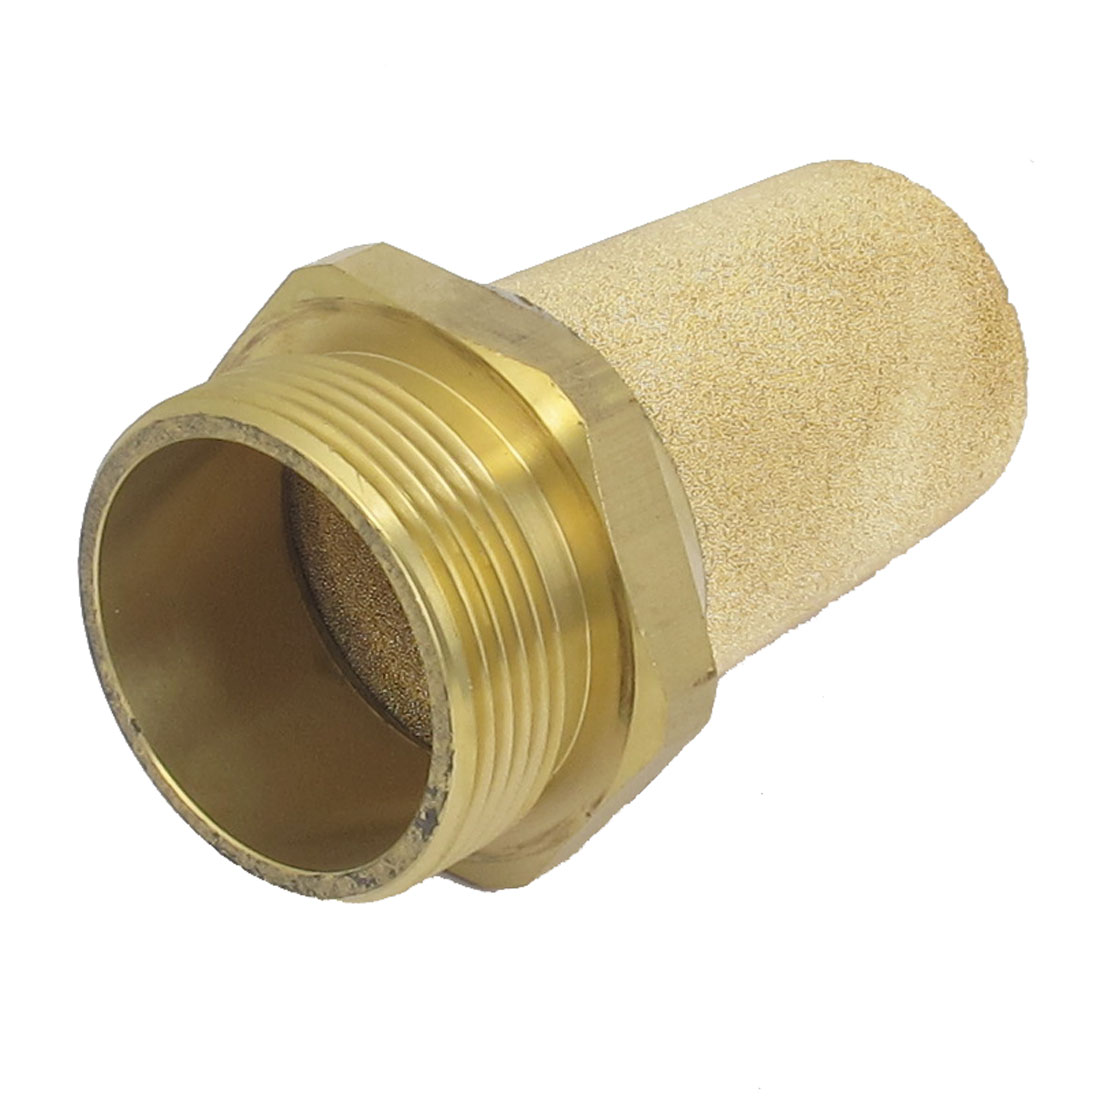 Pneumatic 1 1/2BSP Thread Brass Air Exhaust Noise Reducing Absorb Silencer Muffler